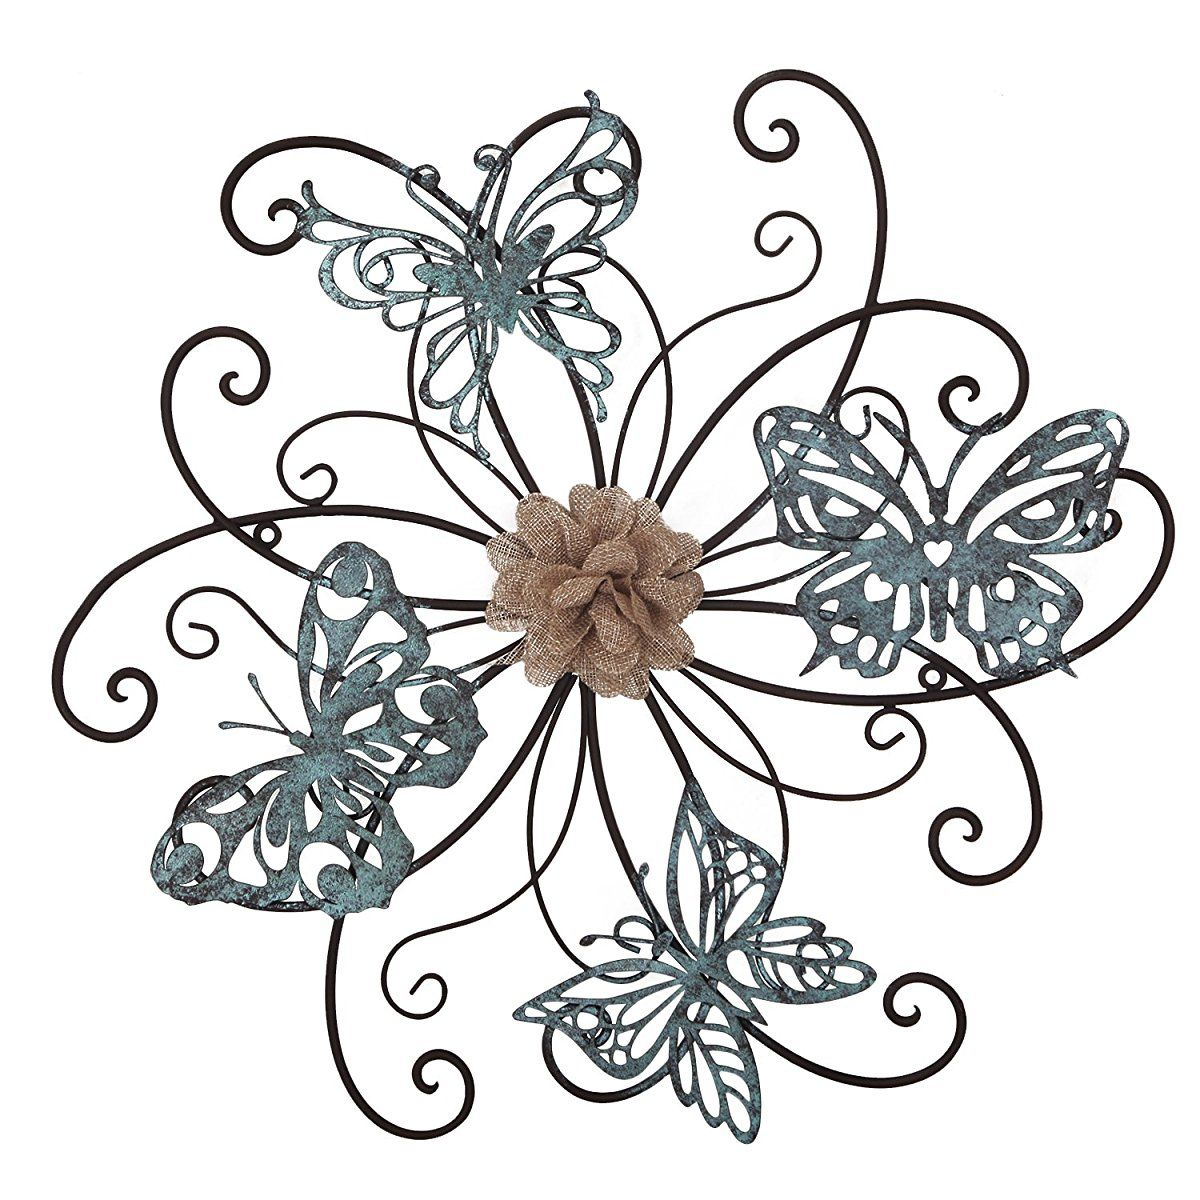 Homes Art Flower And Butterfly Urban Design Metal Wall Decor For Flower And Butterfly Urban Design Metal Wall Decor (View 4 of 30)